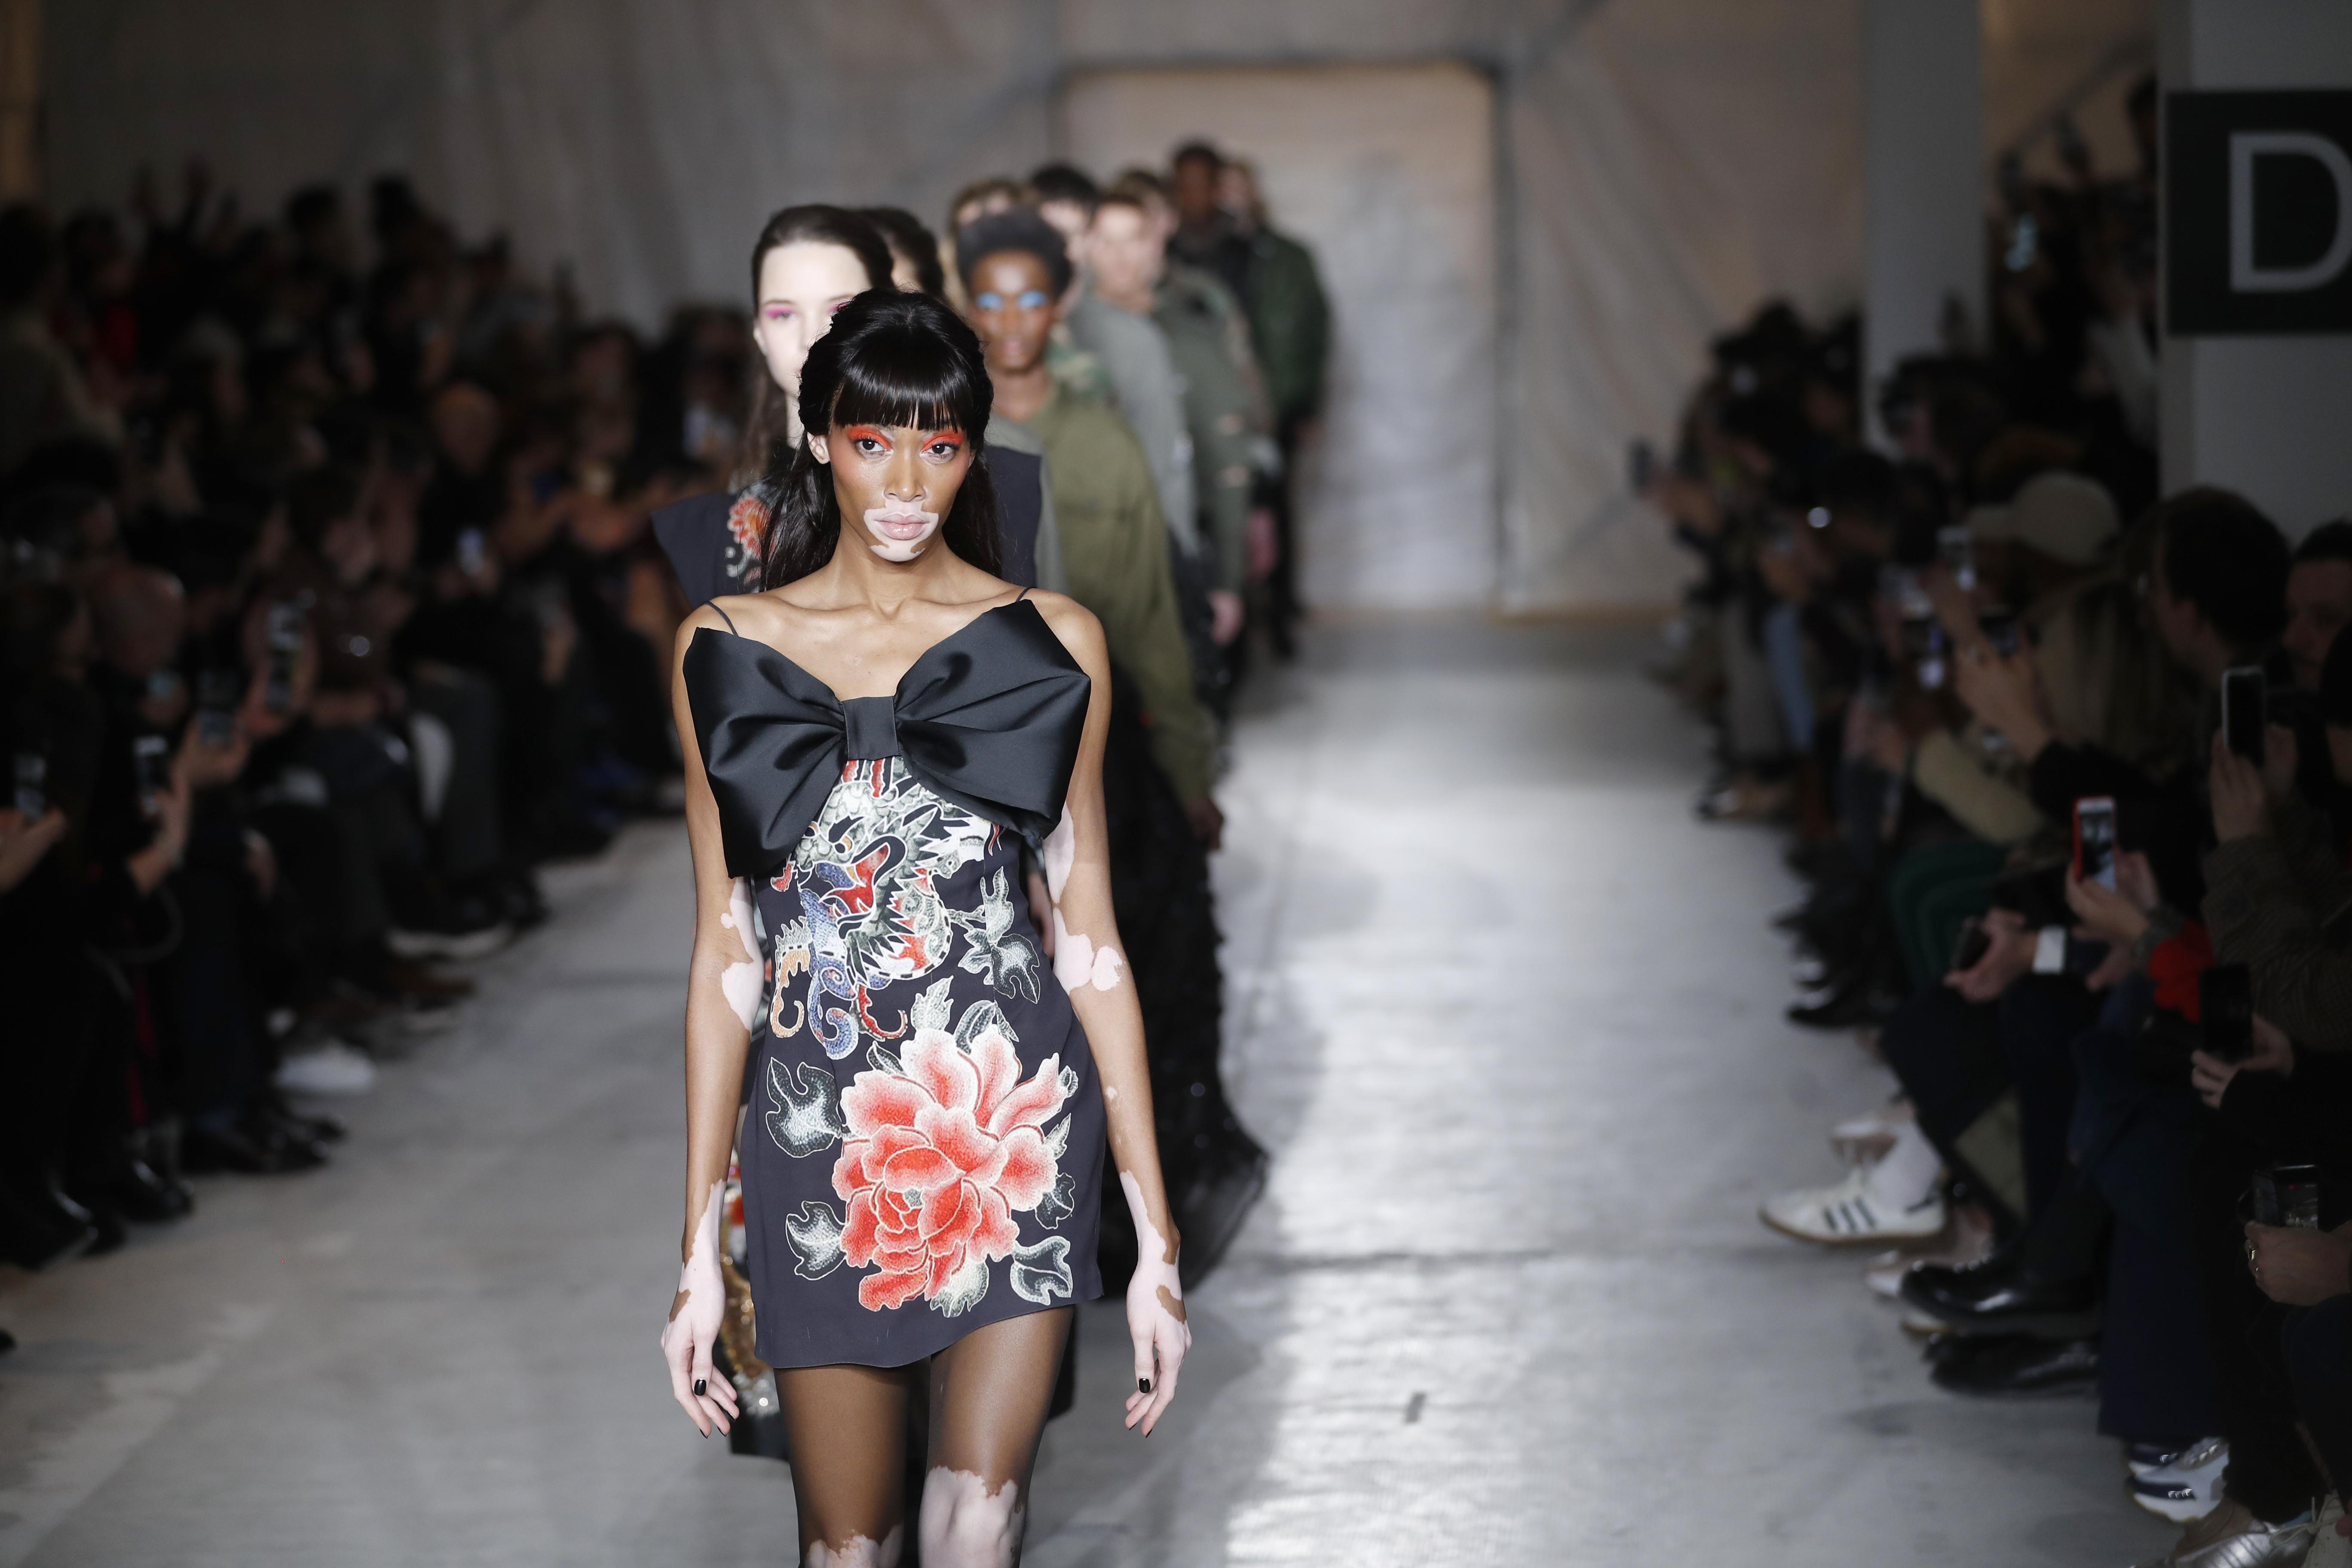 prada eyes strong military silhouette with whimsy washington times